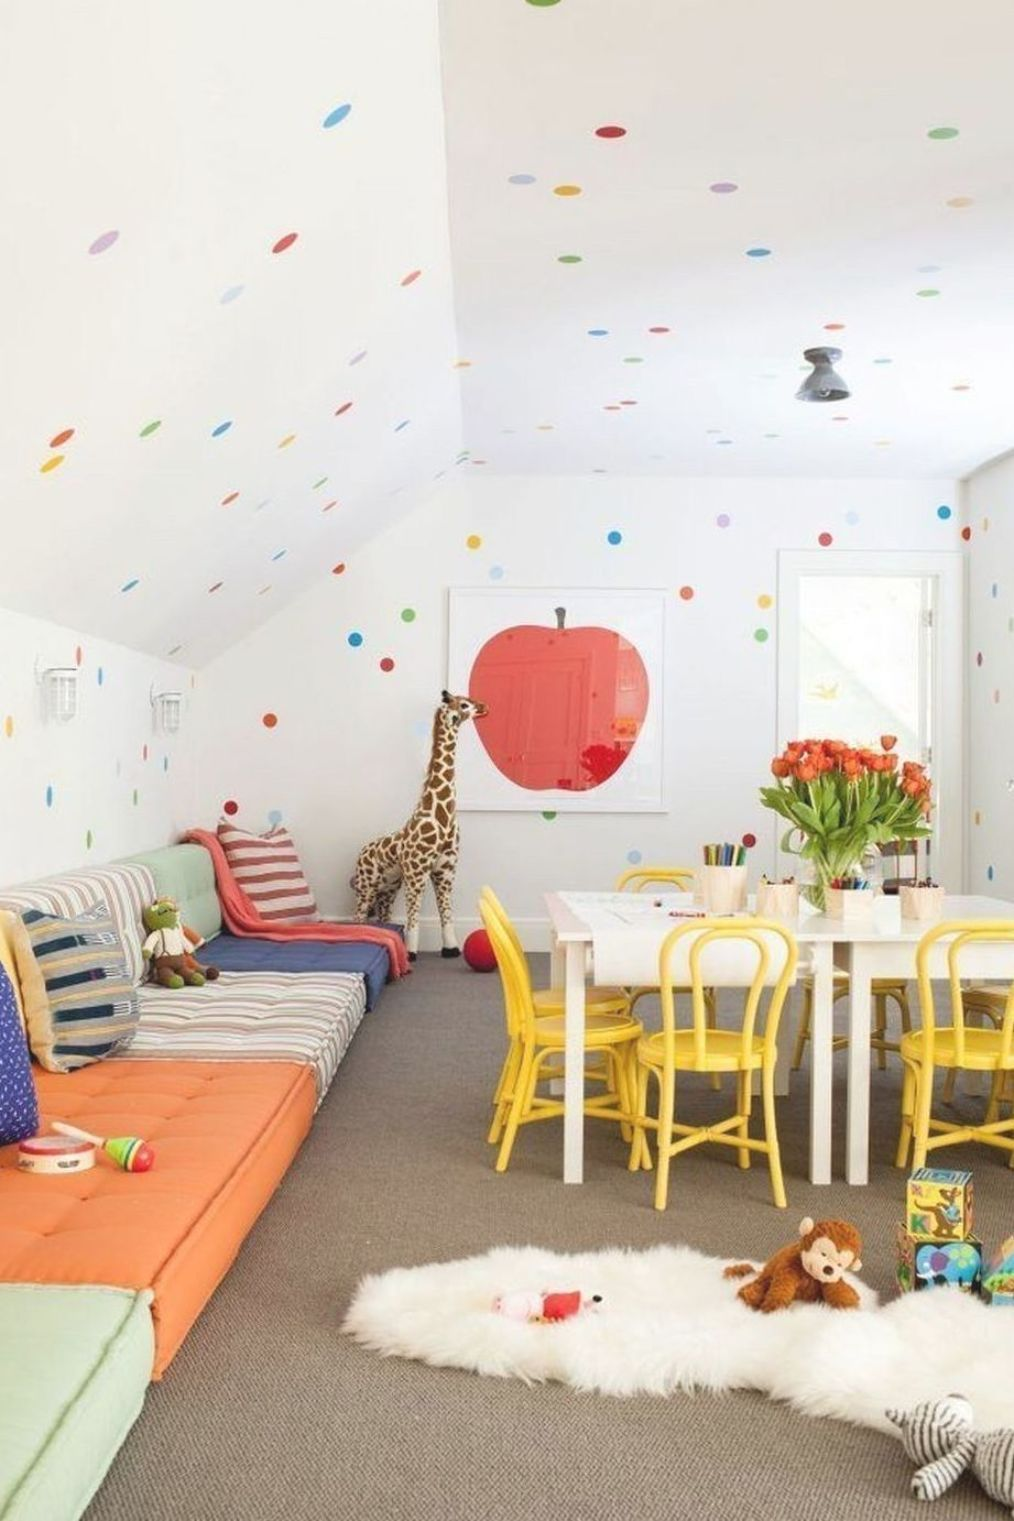 Awesome Playroom Design Ideas For Kids 39 Our latest project - a cool gender neutral space with LOTS of vintage finds! #kidsbedroom #kidsdecor #pictureledge #vintagekidsrooms #greenkidsroom #vintagekidsroom #farrowandballgreen #uoeu #alphabetbedding #genderneutralroom #boysbedroom #kidsroomideas #kurabed #ikeahack Photo Credits: Anna Stathaki